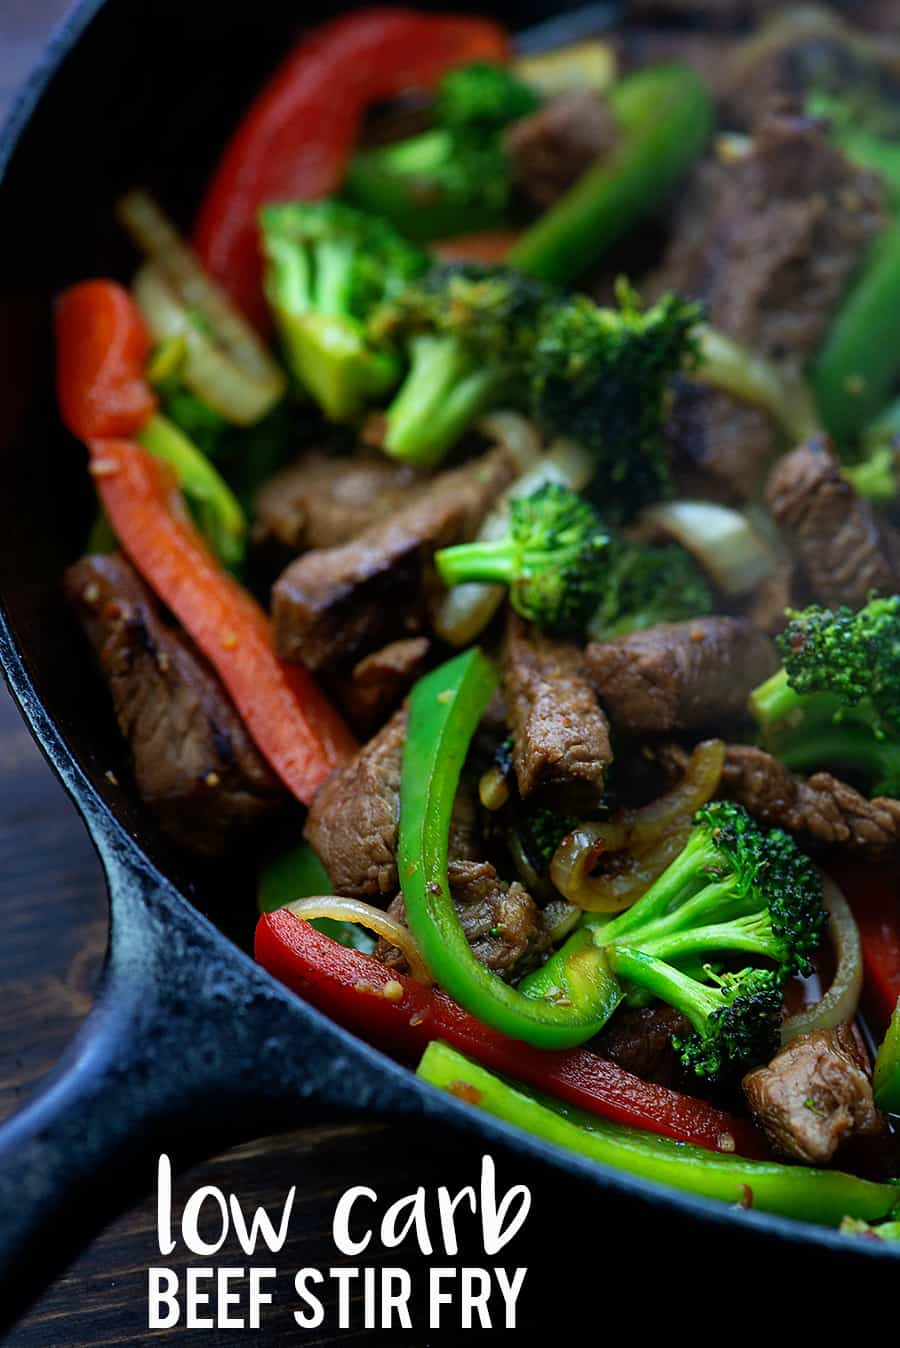 Low carb steak stir fry with my homemade low carb stir fry sauce! Ready in 30 minutes and SO GOOD! #lowcarb #keto #stirfry #recipes